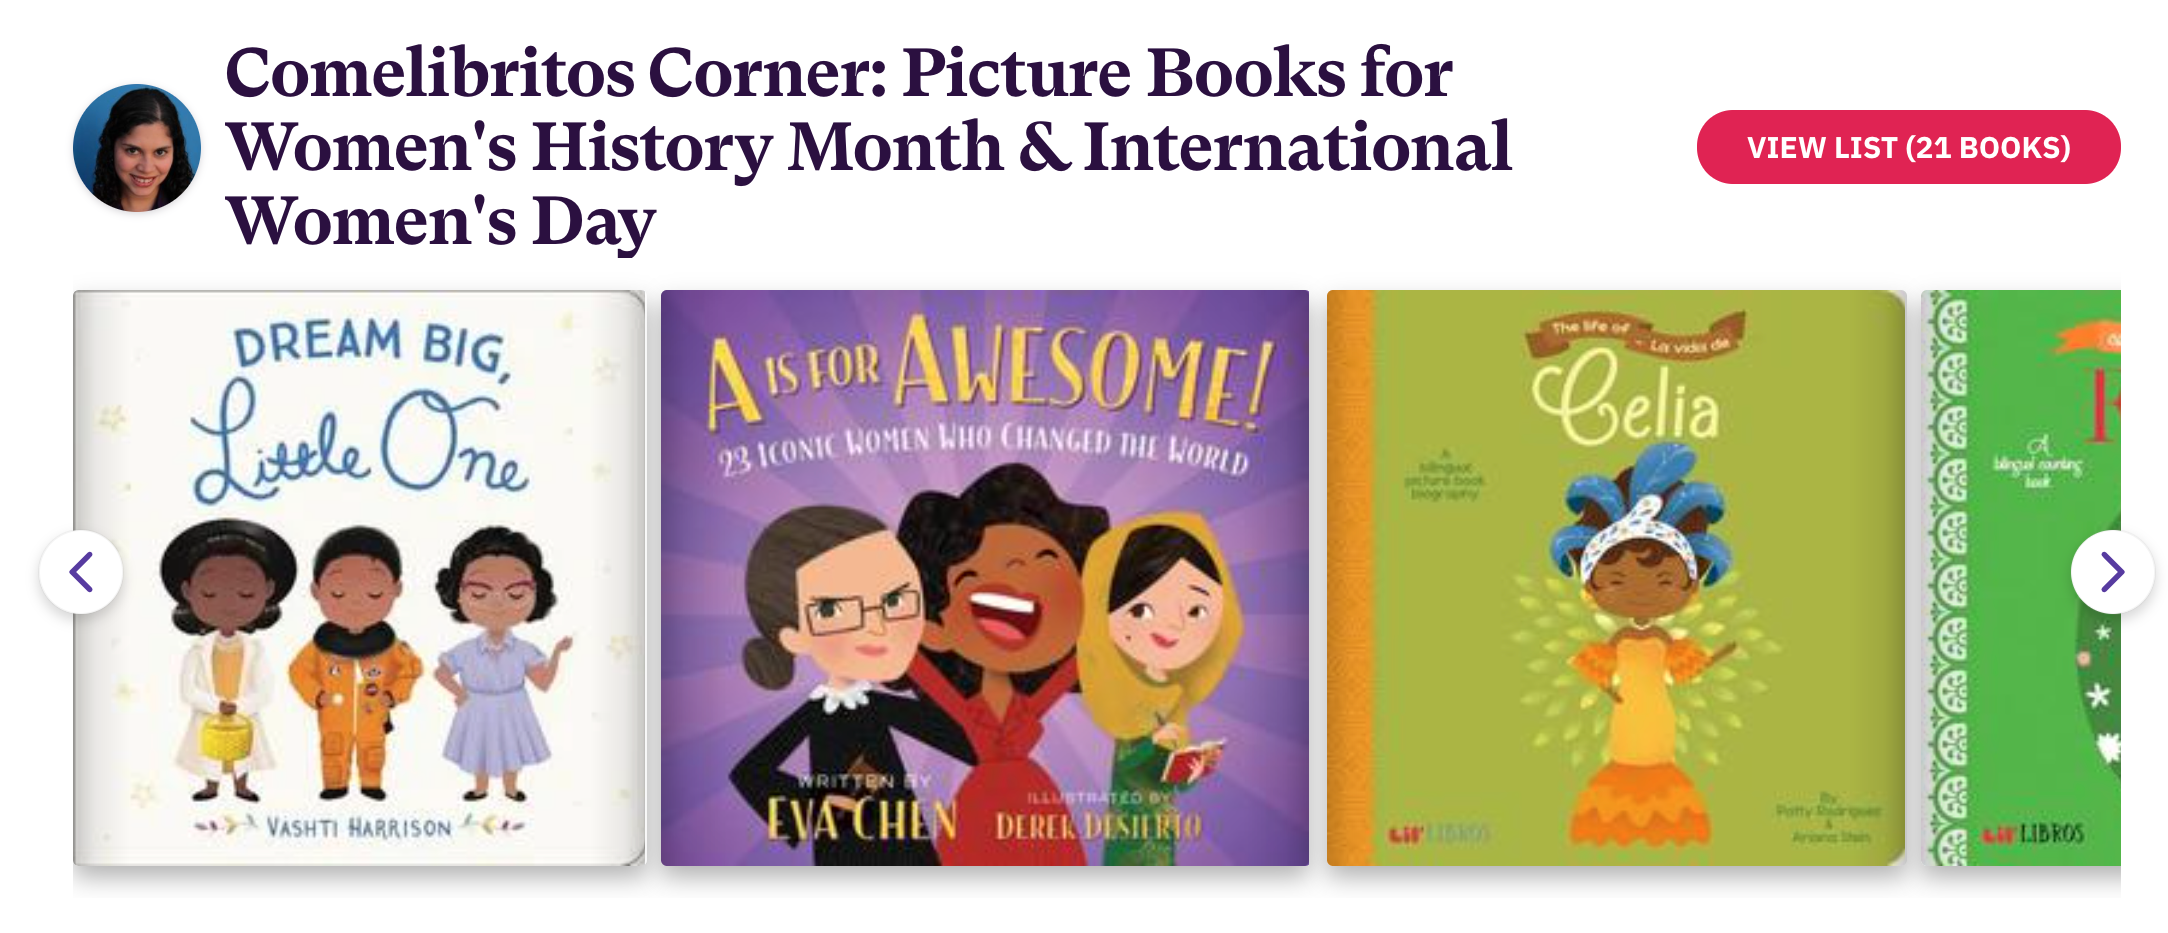 Image of picture books included in the Bookshop list called: Comelibritos Corner: Picture Books for Women's History Month & International Women's Day